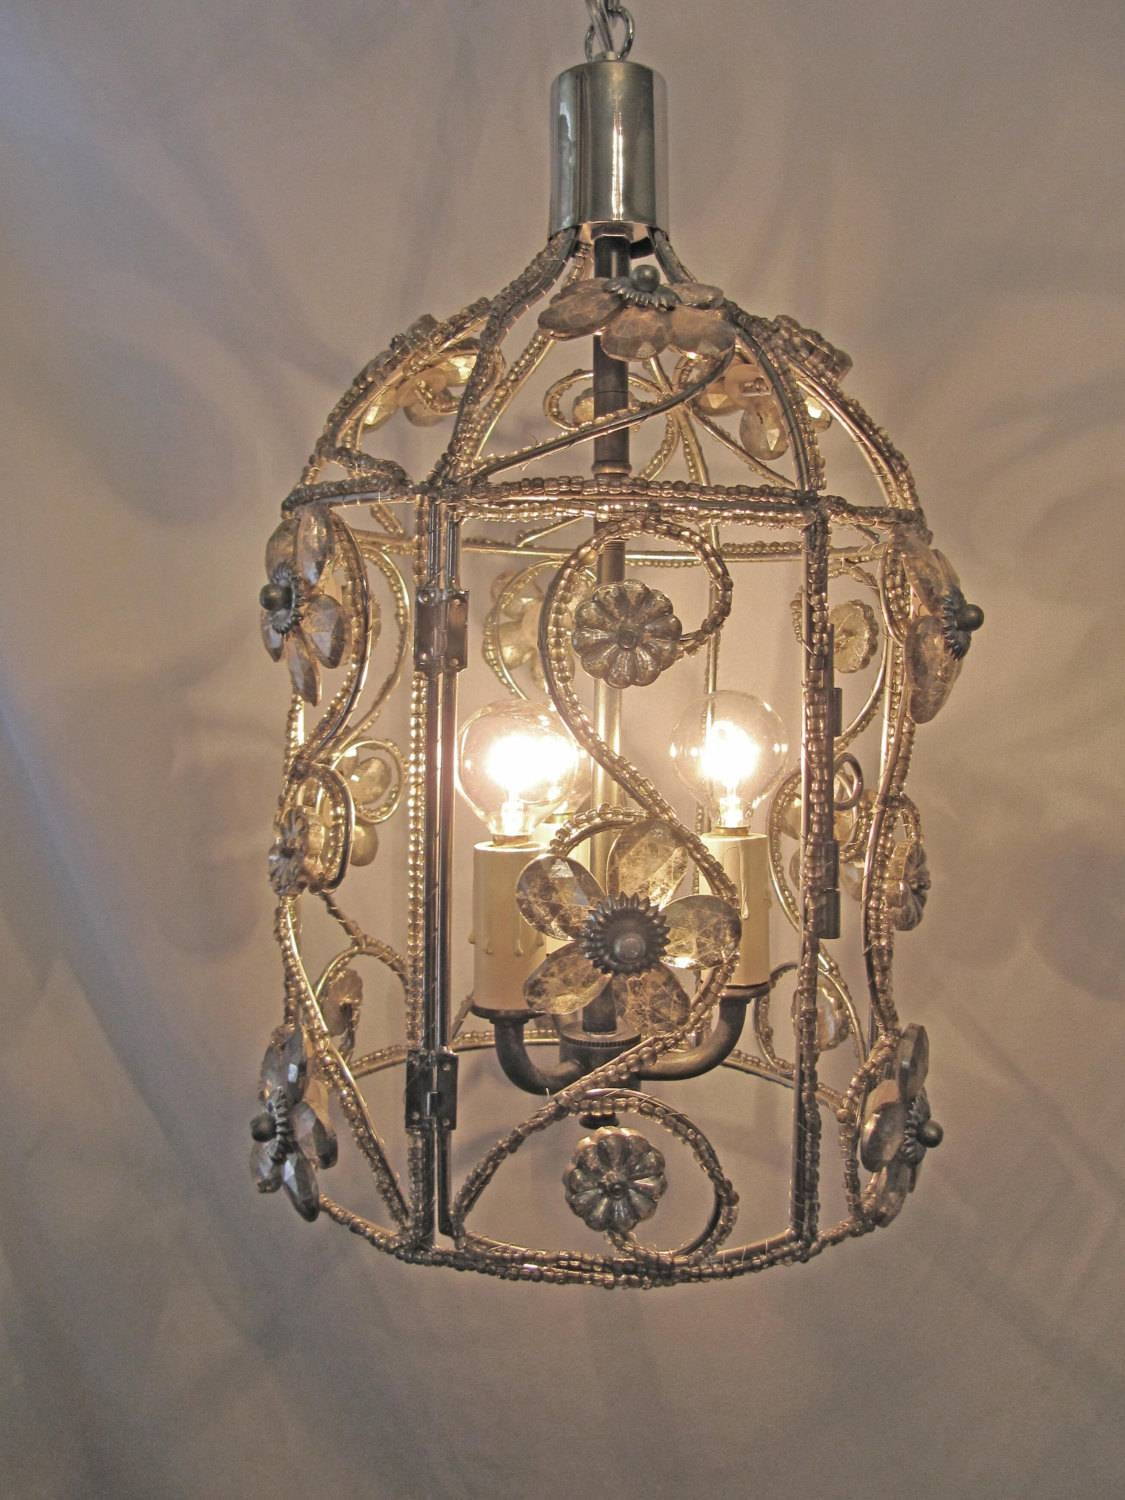 Chandelier Bird Cage Fixture Custom Repurposed 3 Lights Nickel within Birdcage Lights Fixtures (Image 14 of 15)